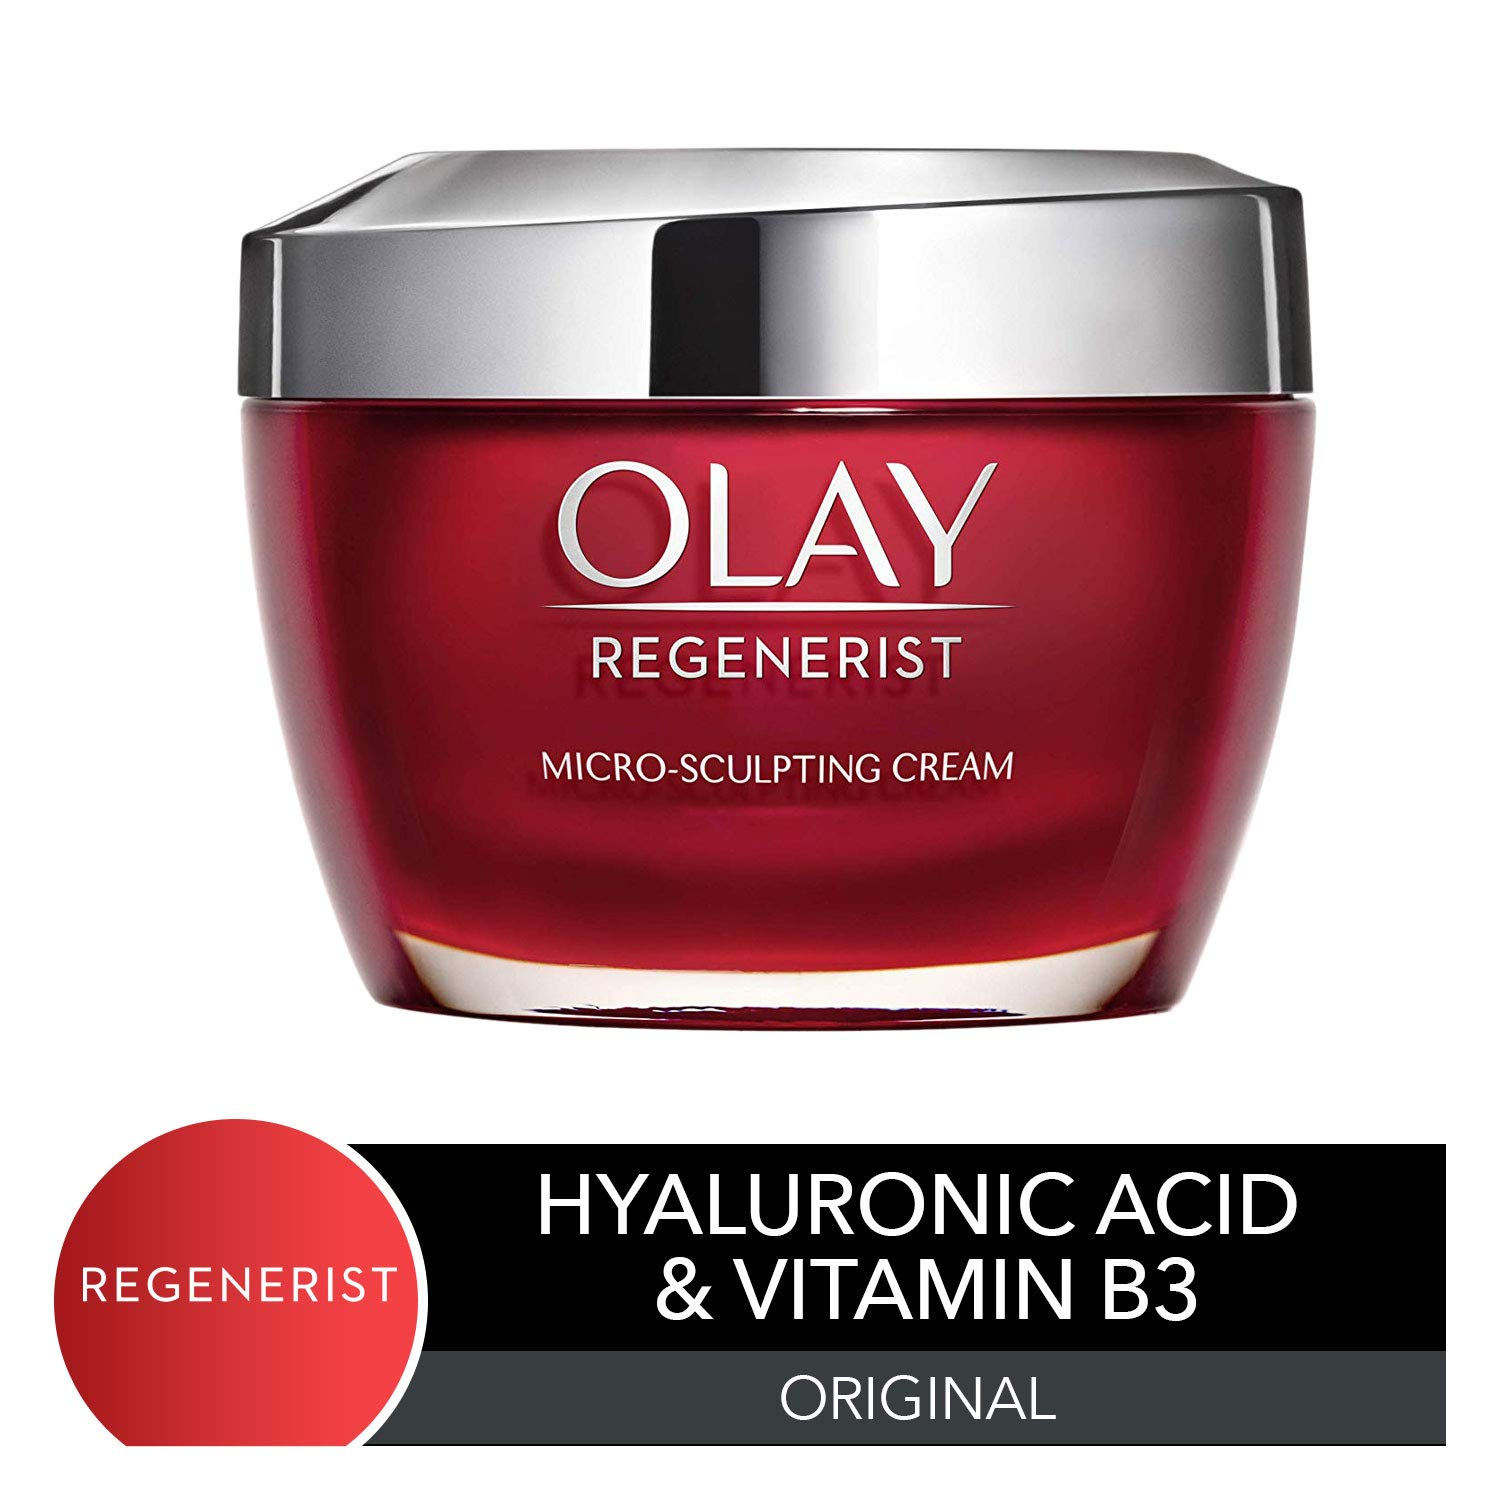 Olay Face Moisturizer with Collagen Peptides by Olay Regenerist, Micro-Sculpting Cream, 1.7 oz by Olay